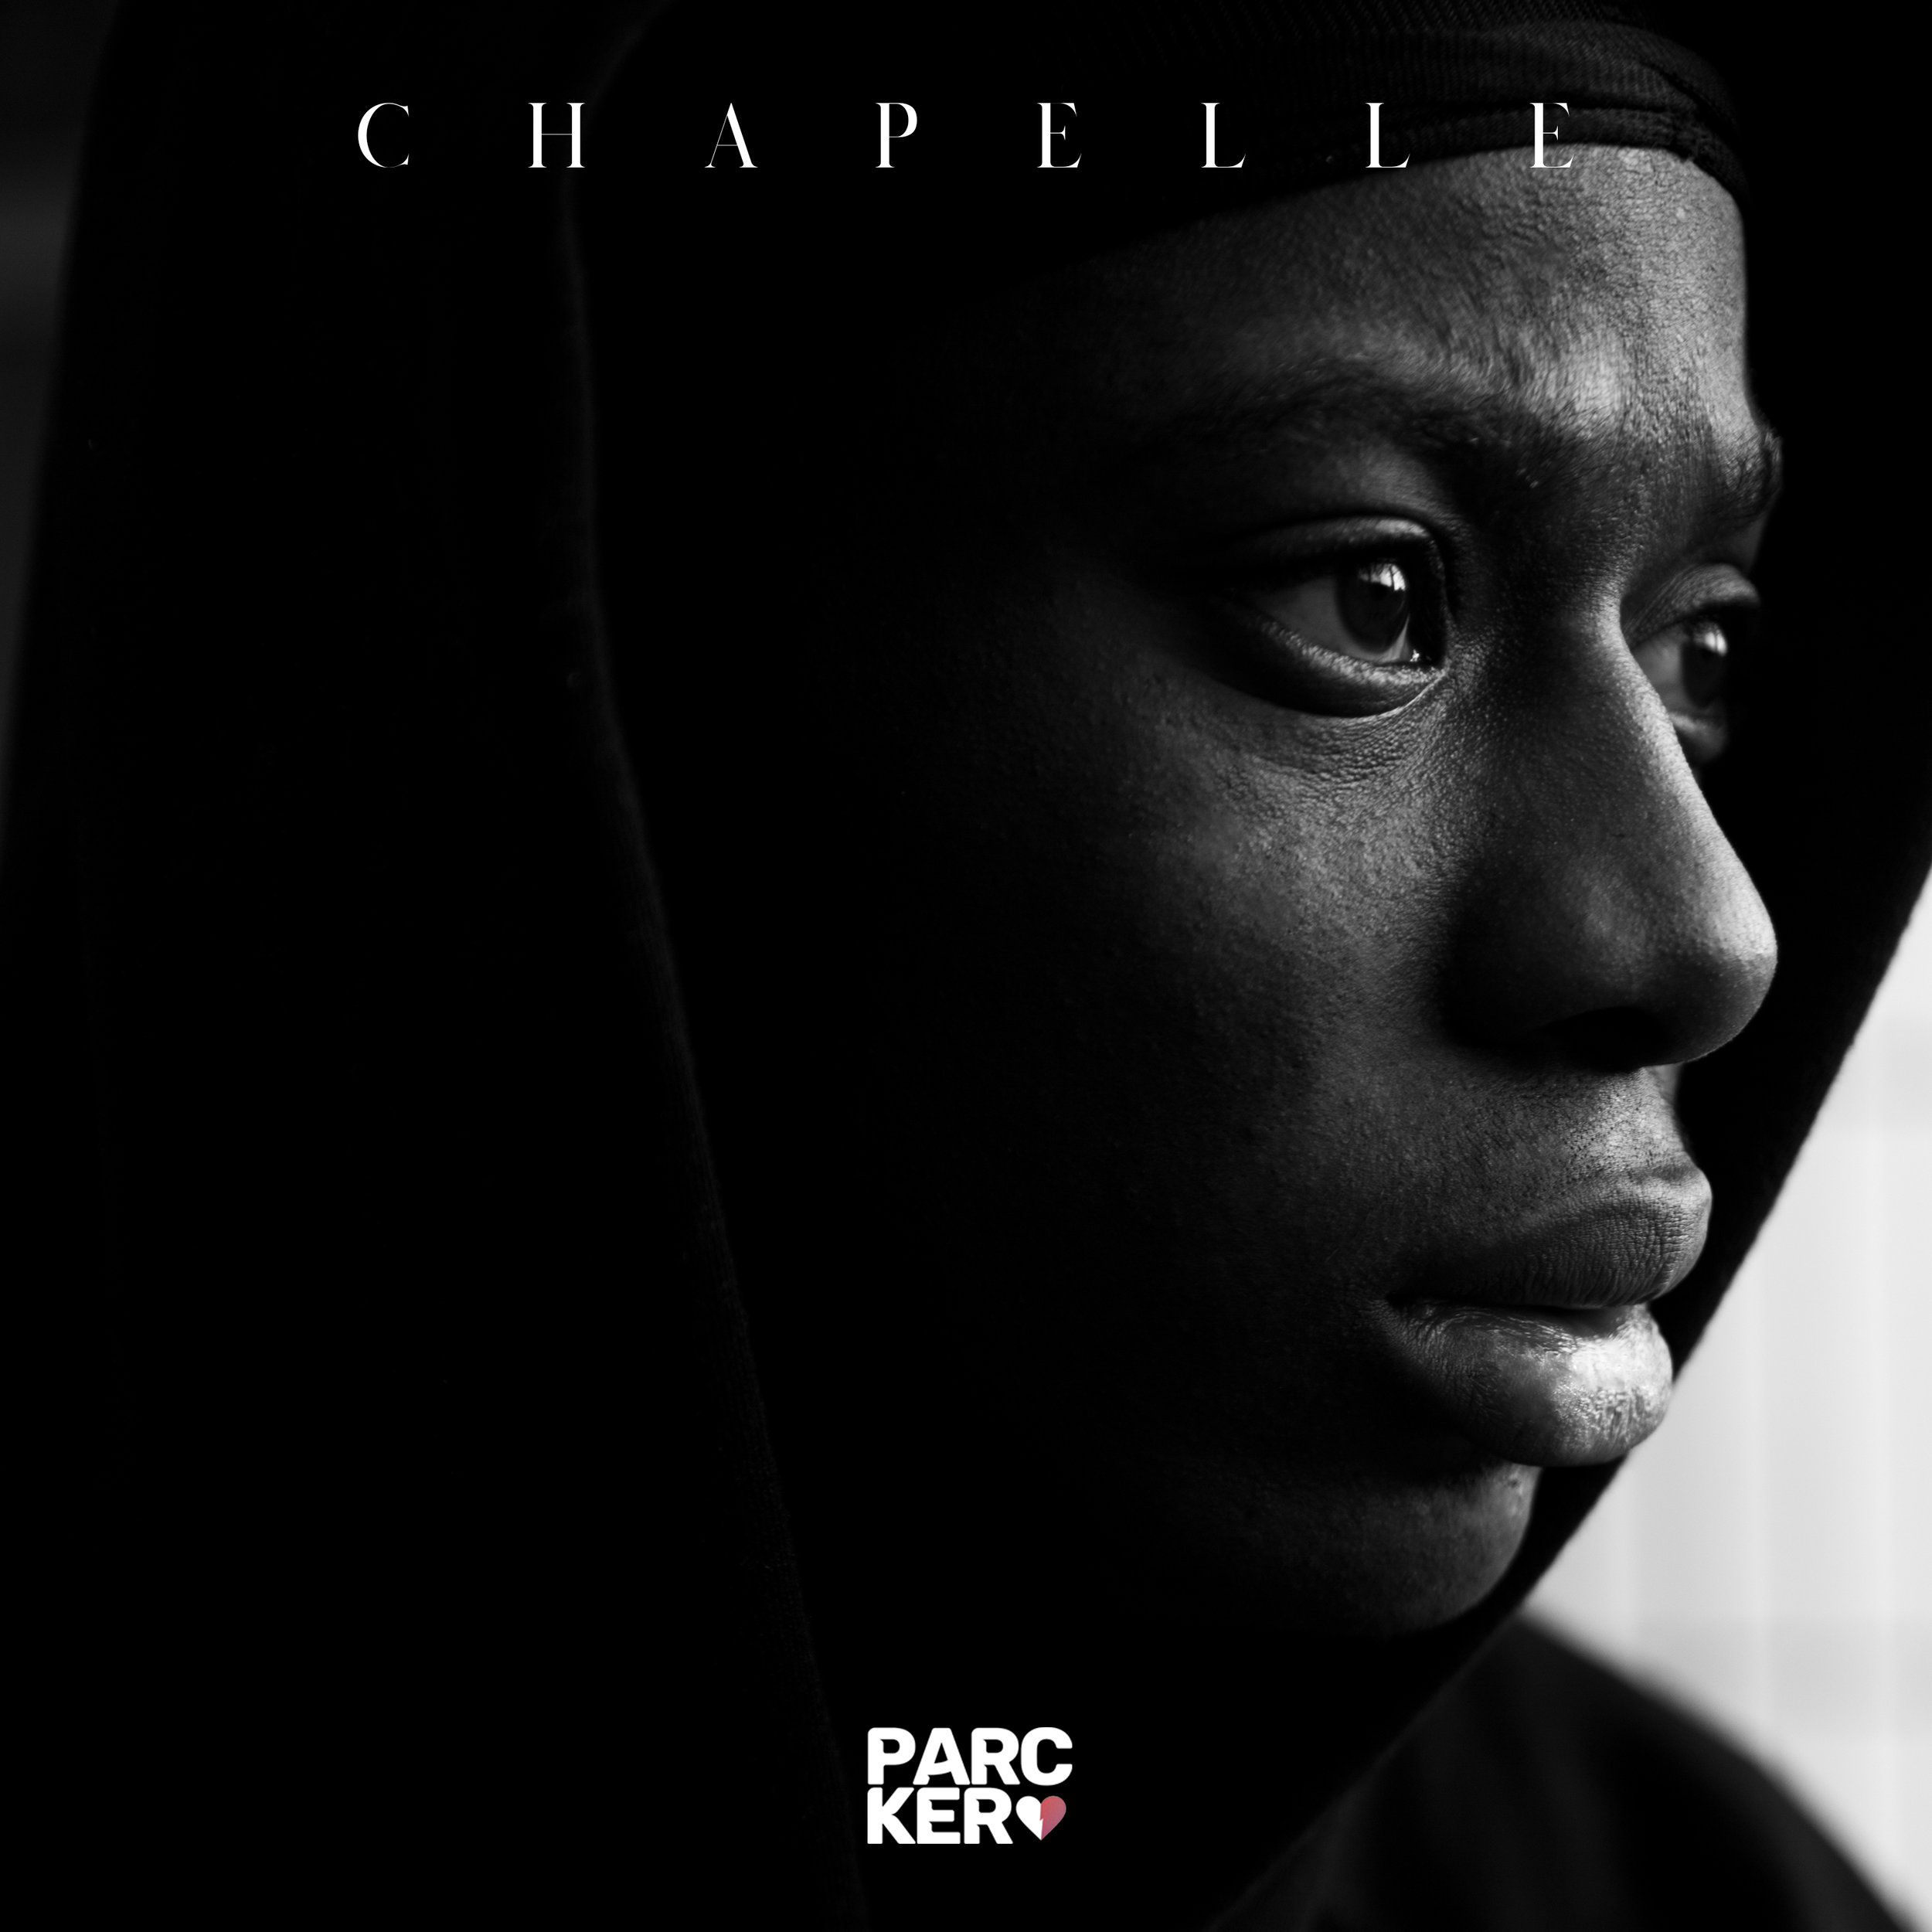 PARCKER - CHAPELLE (single cover)